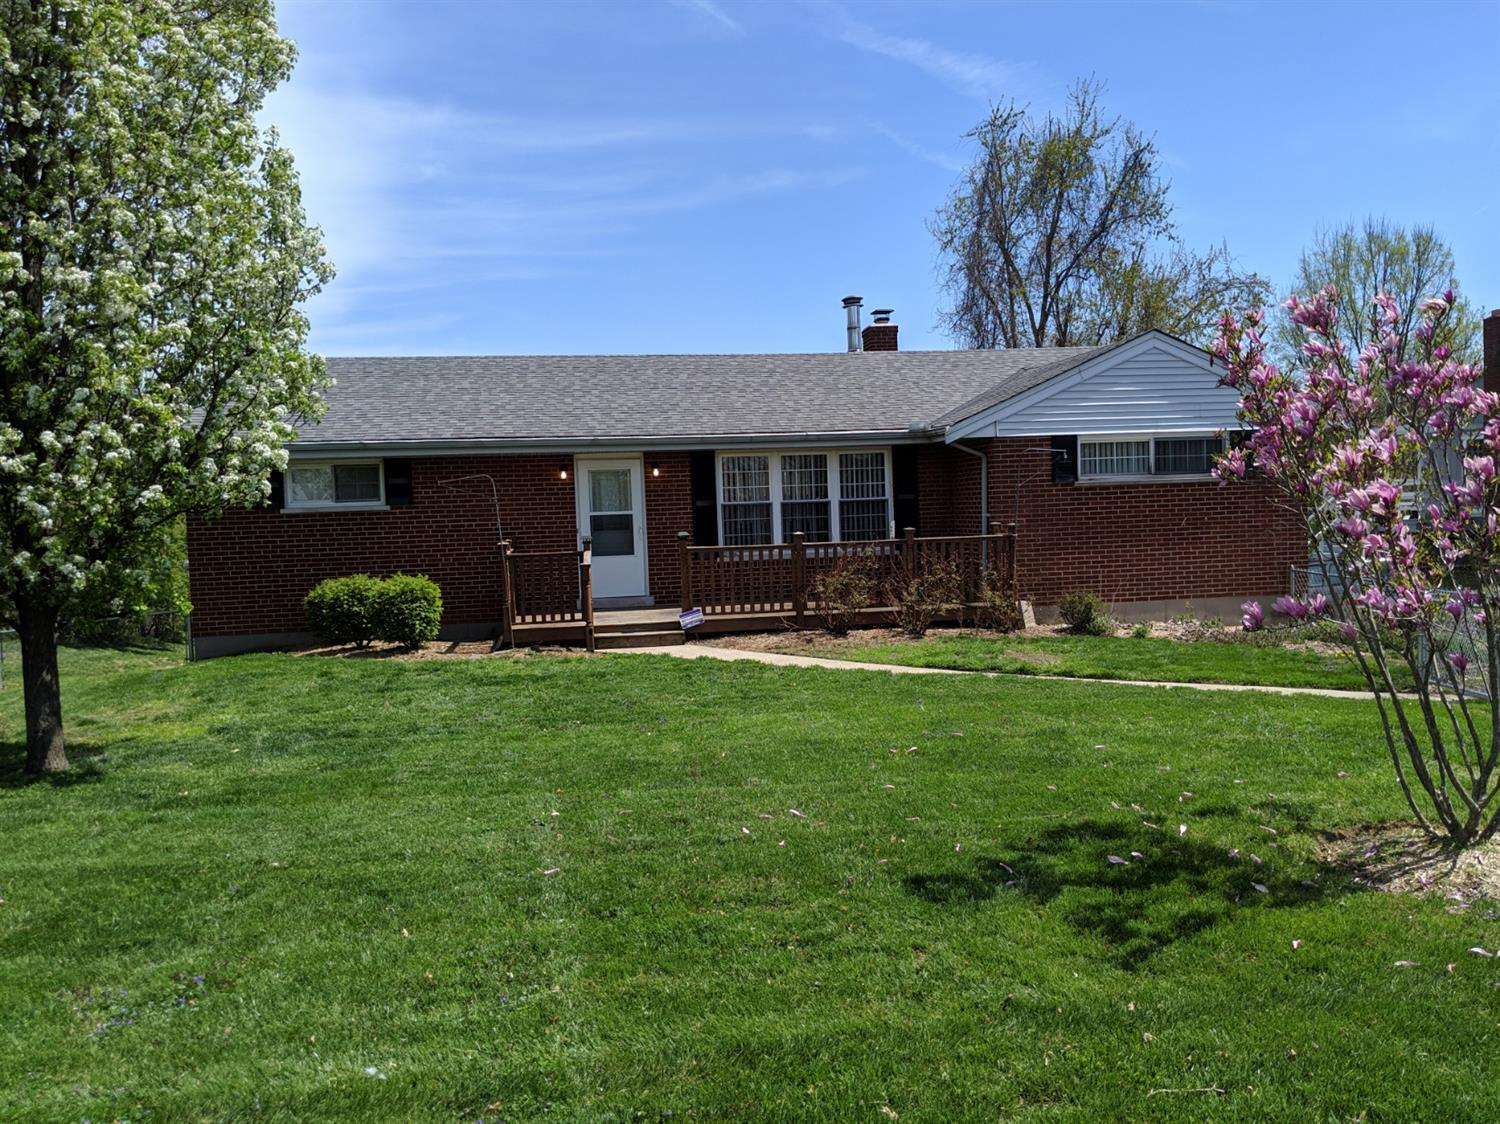 9727 Mt. Nebo Rd Miami Twp. (West), OH